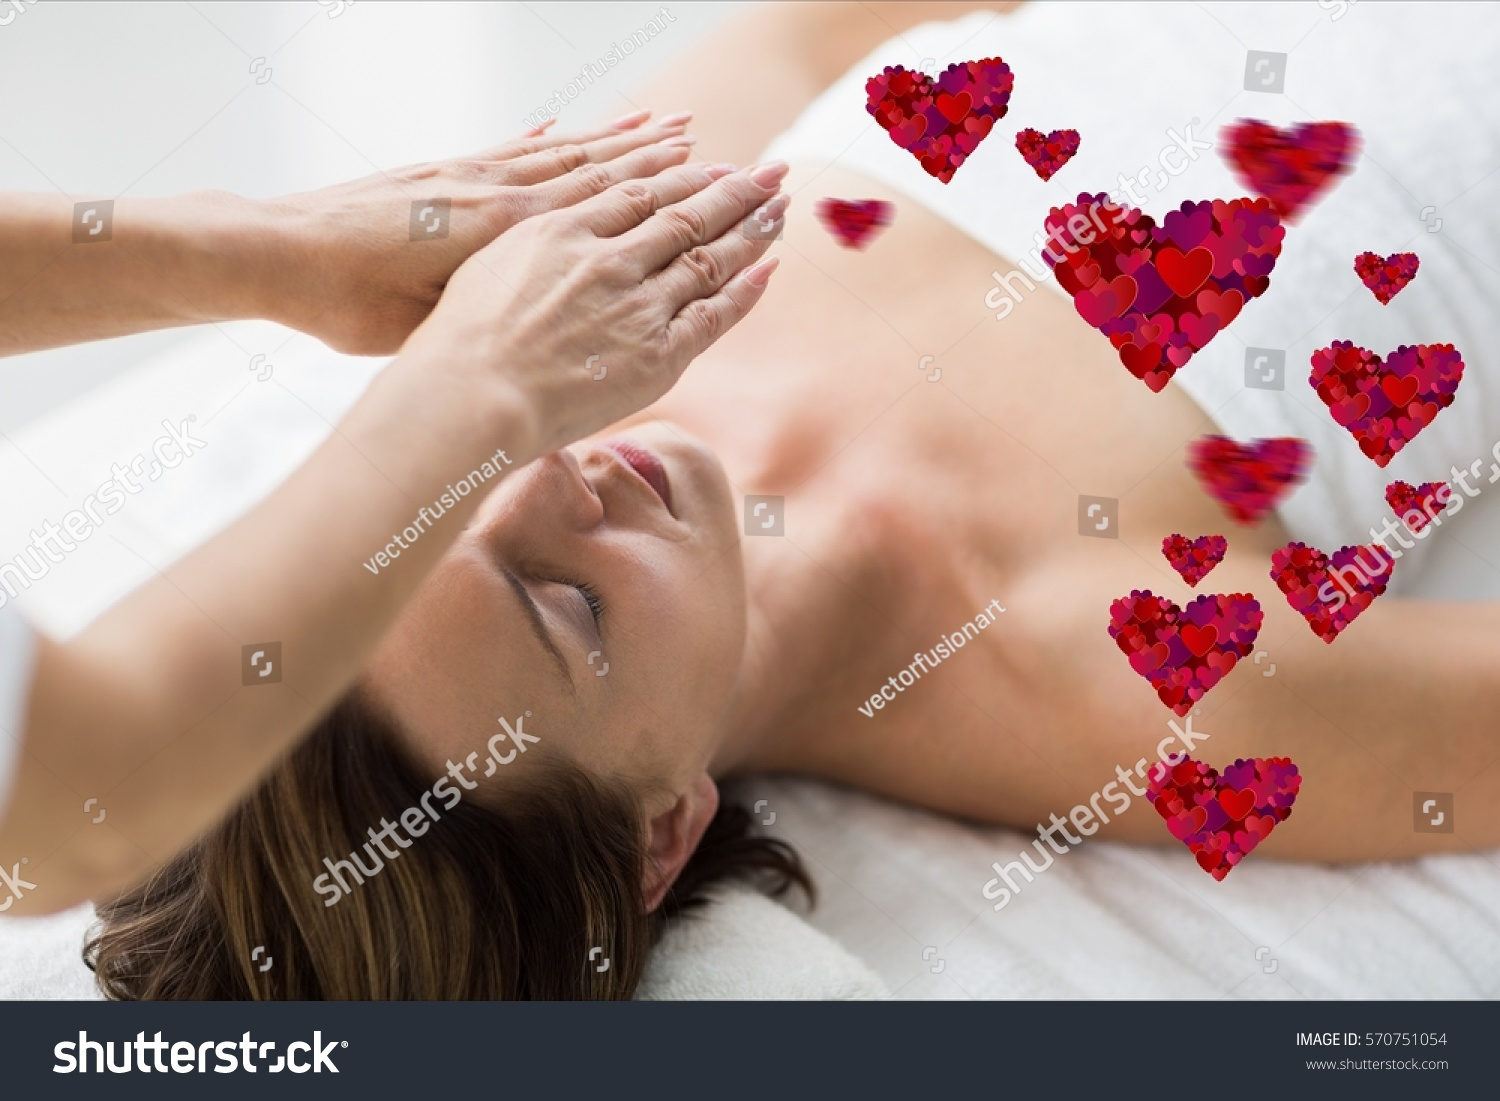 Giving and receiving erotic massage